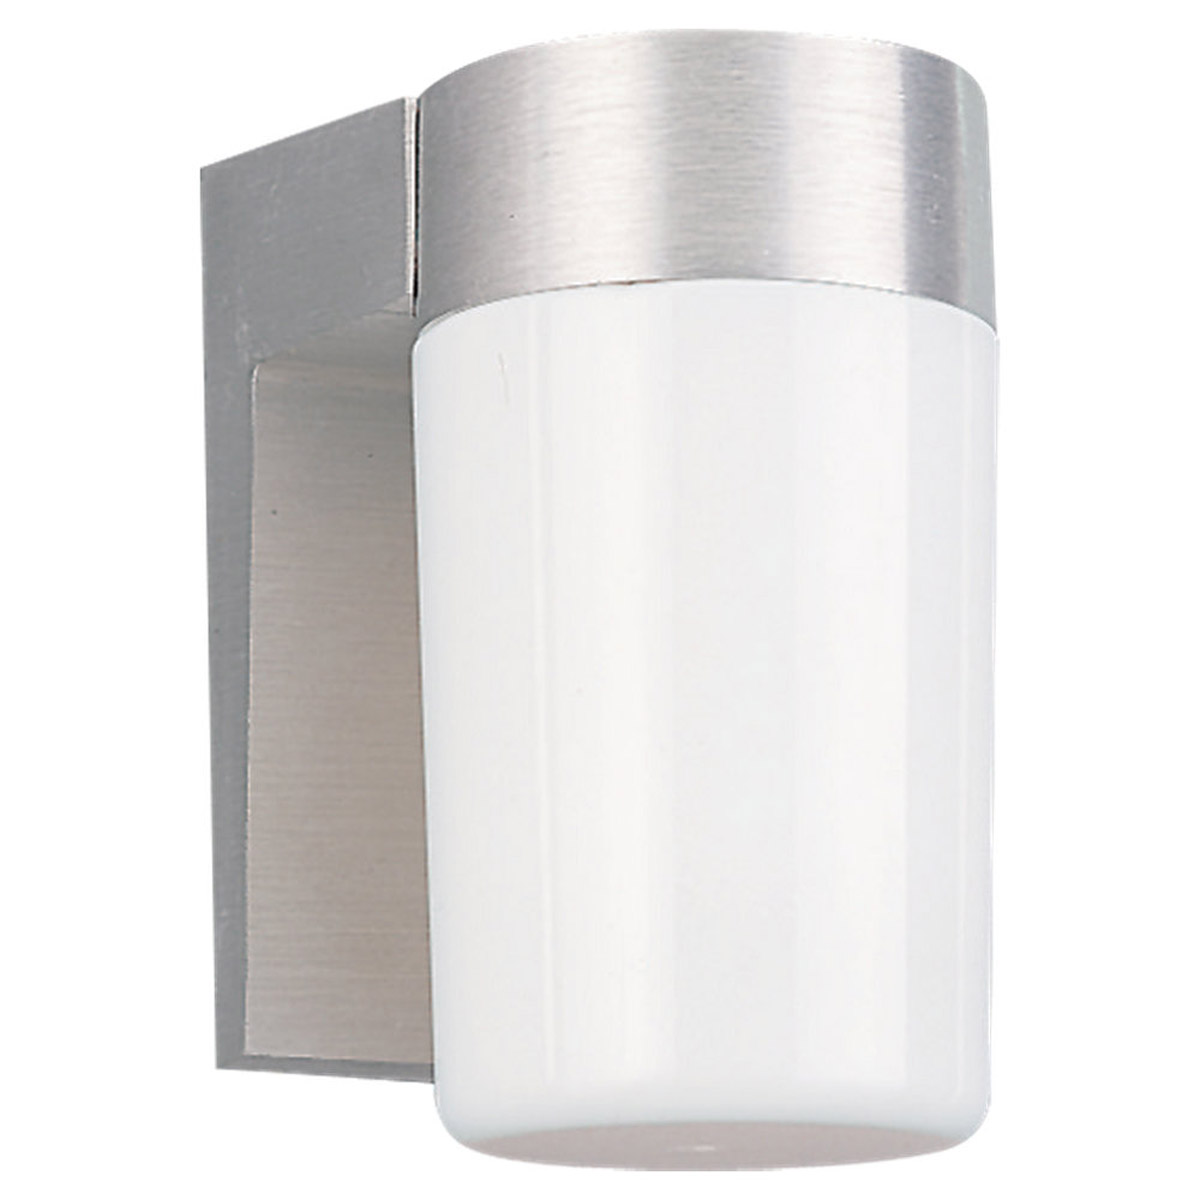 Sea Gull Lighting Signature 1 Light Outdoor Wall Lantern in Satin Aluminum 8301-04 photo